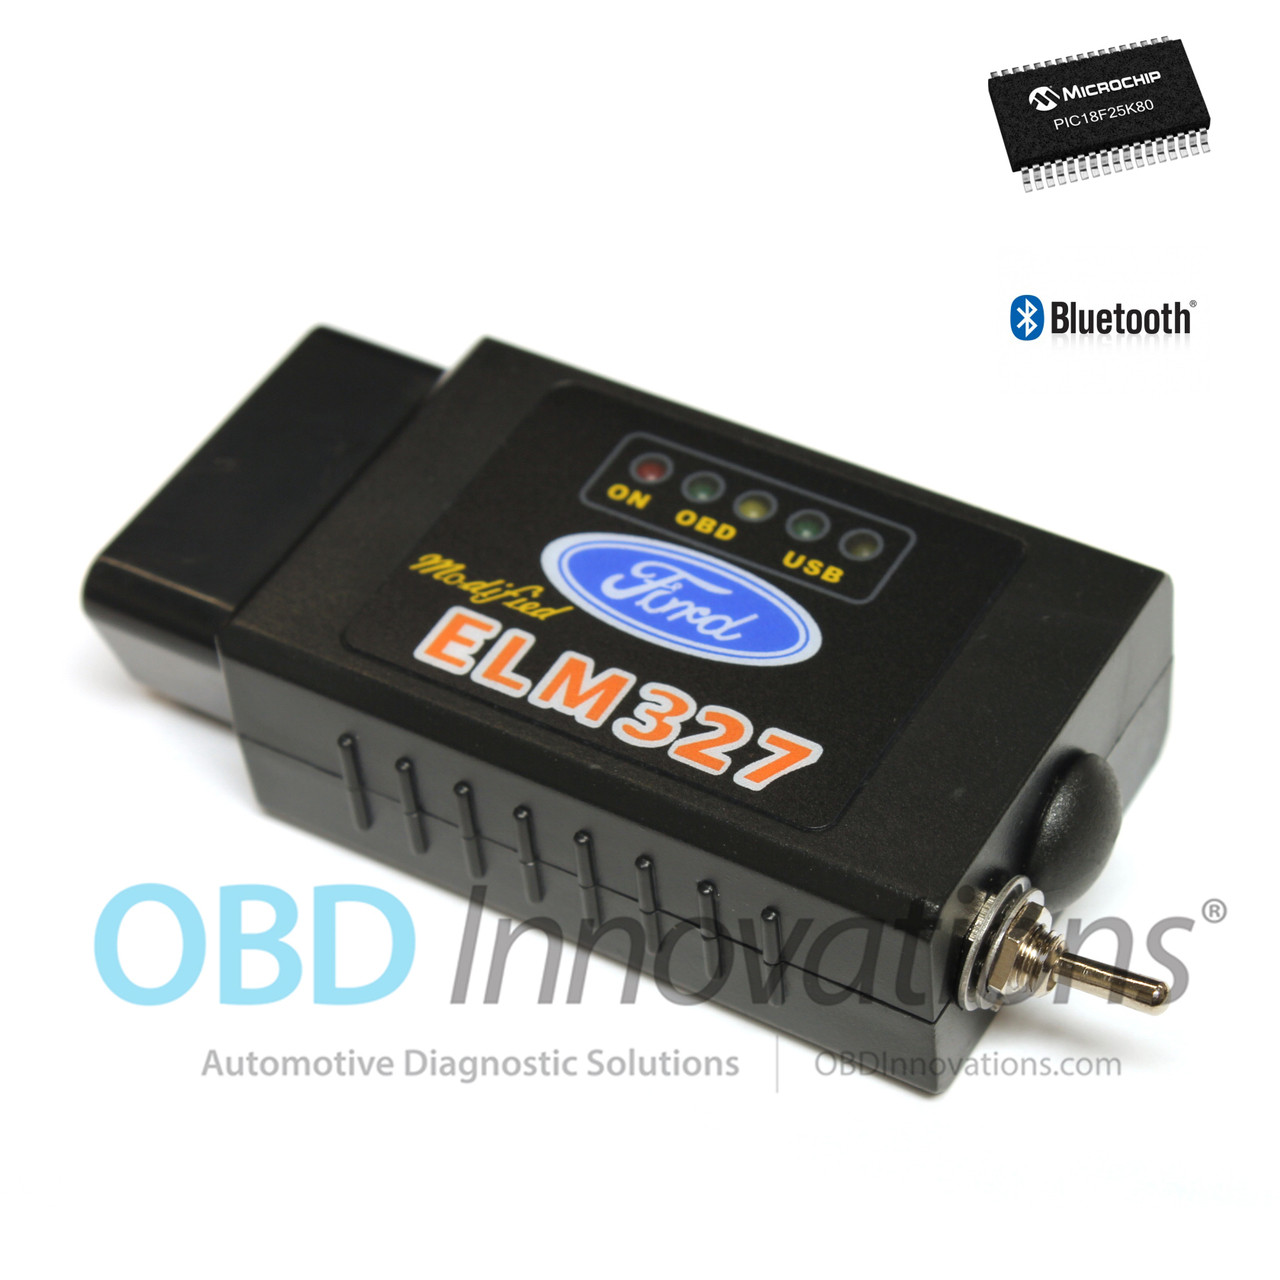 elm327 bluetooth obd2 scanner modified hs can ms can switch with microchip pic18f25k80 for forscan. Black Bedroom Furniture Sets. Home Design Ideas